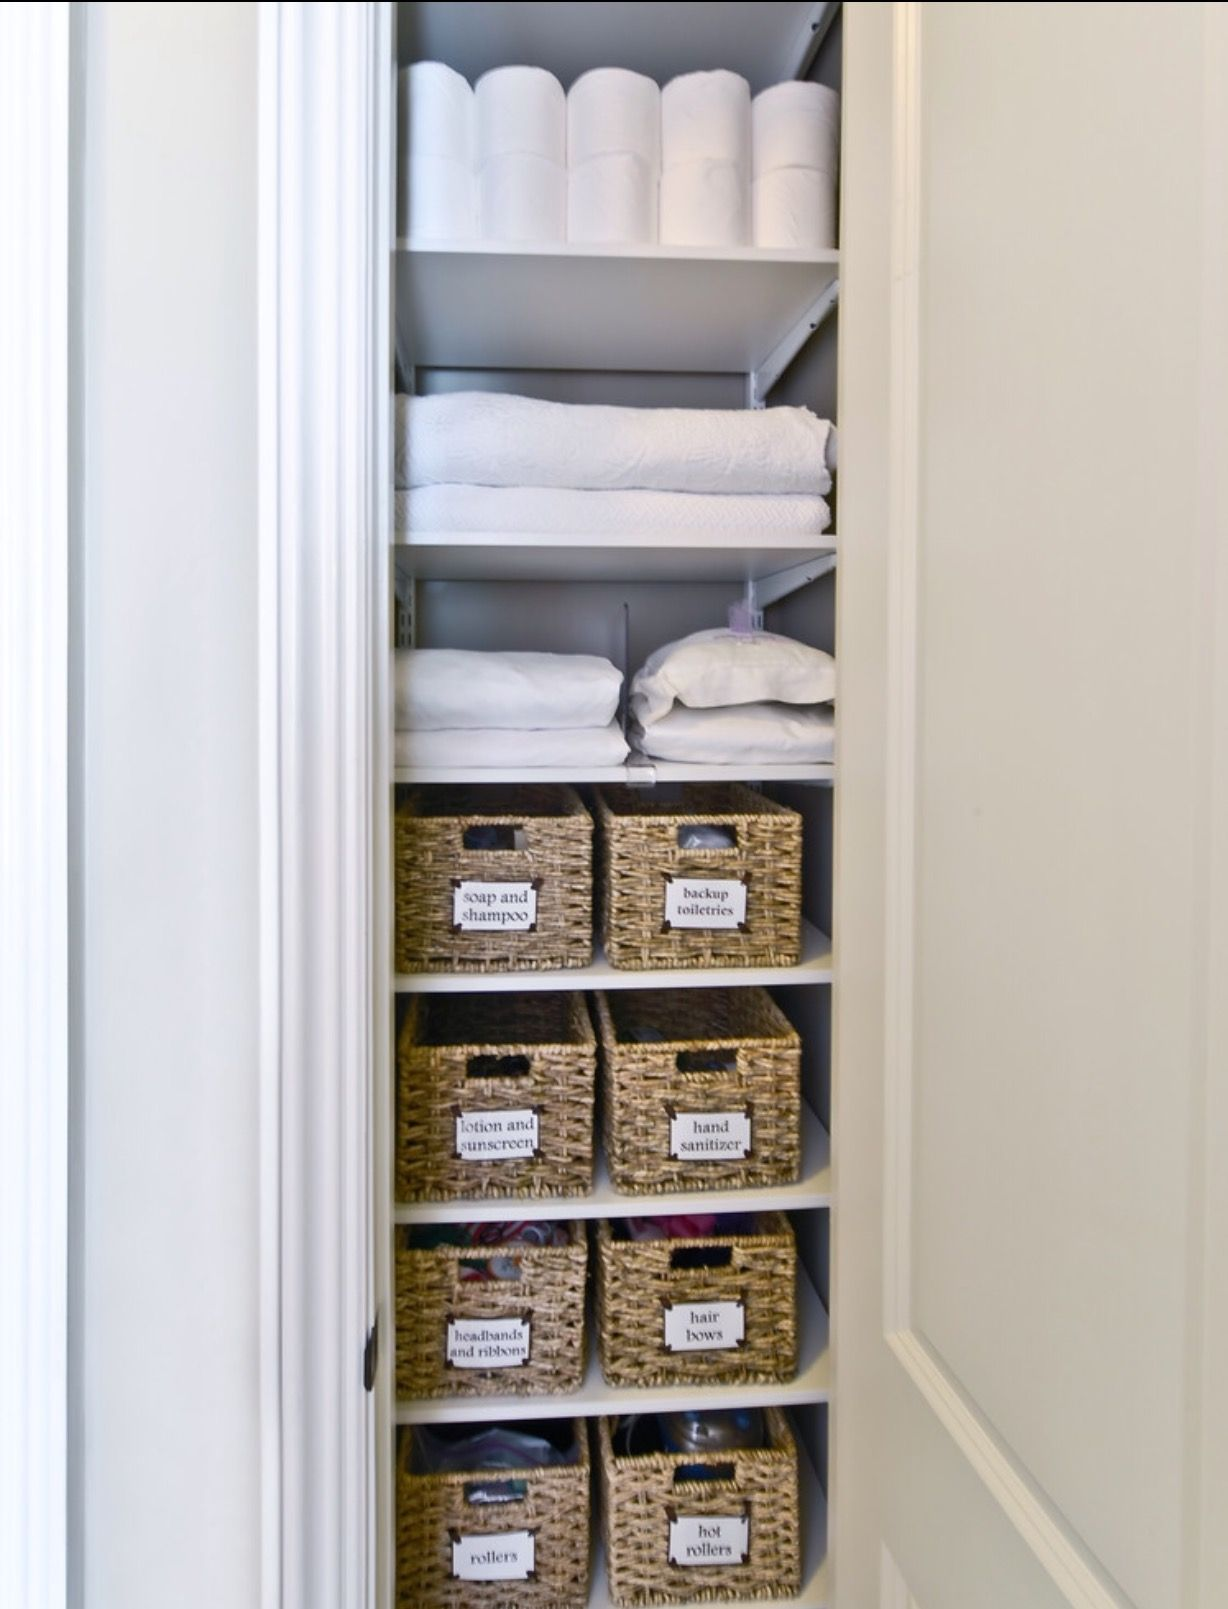 Bathroom Linen Closet Ideas Pin By Jamie Avona On Home In 2019 Bathroom Closet Organization